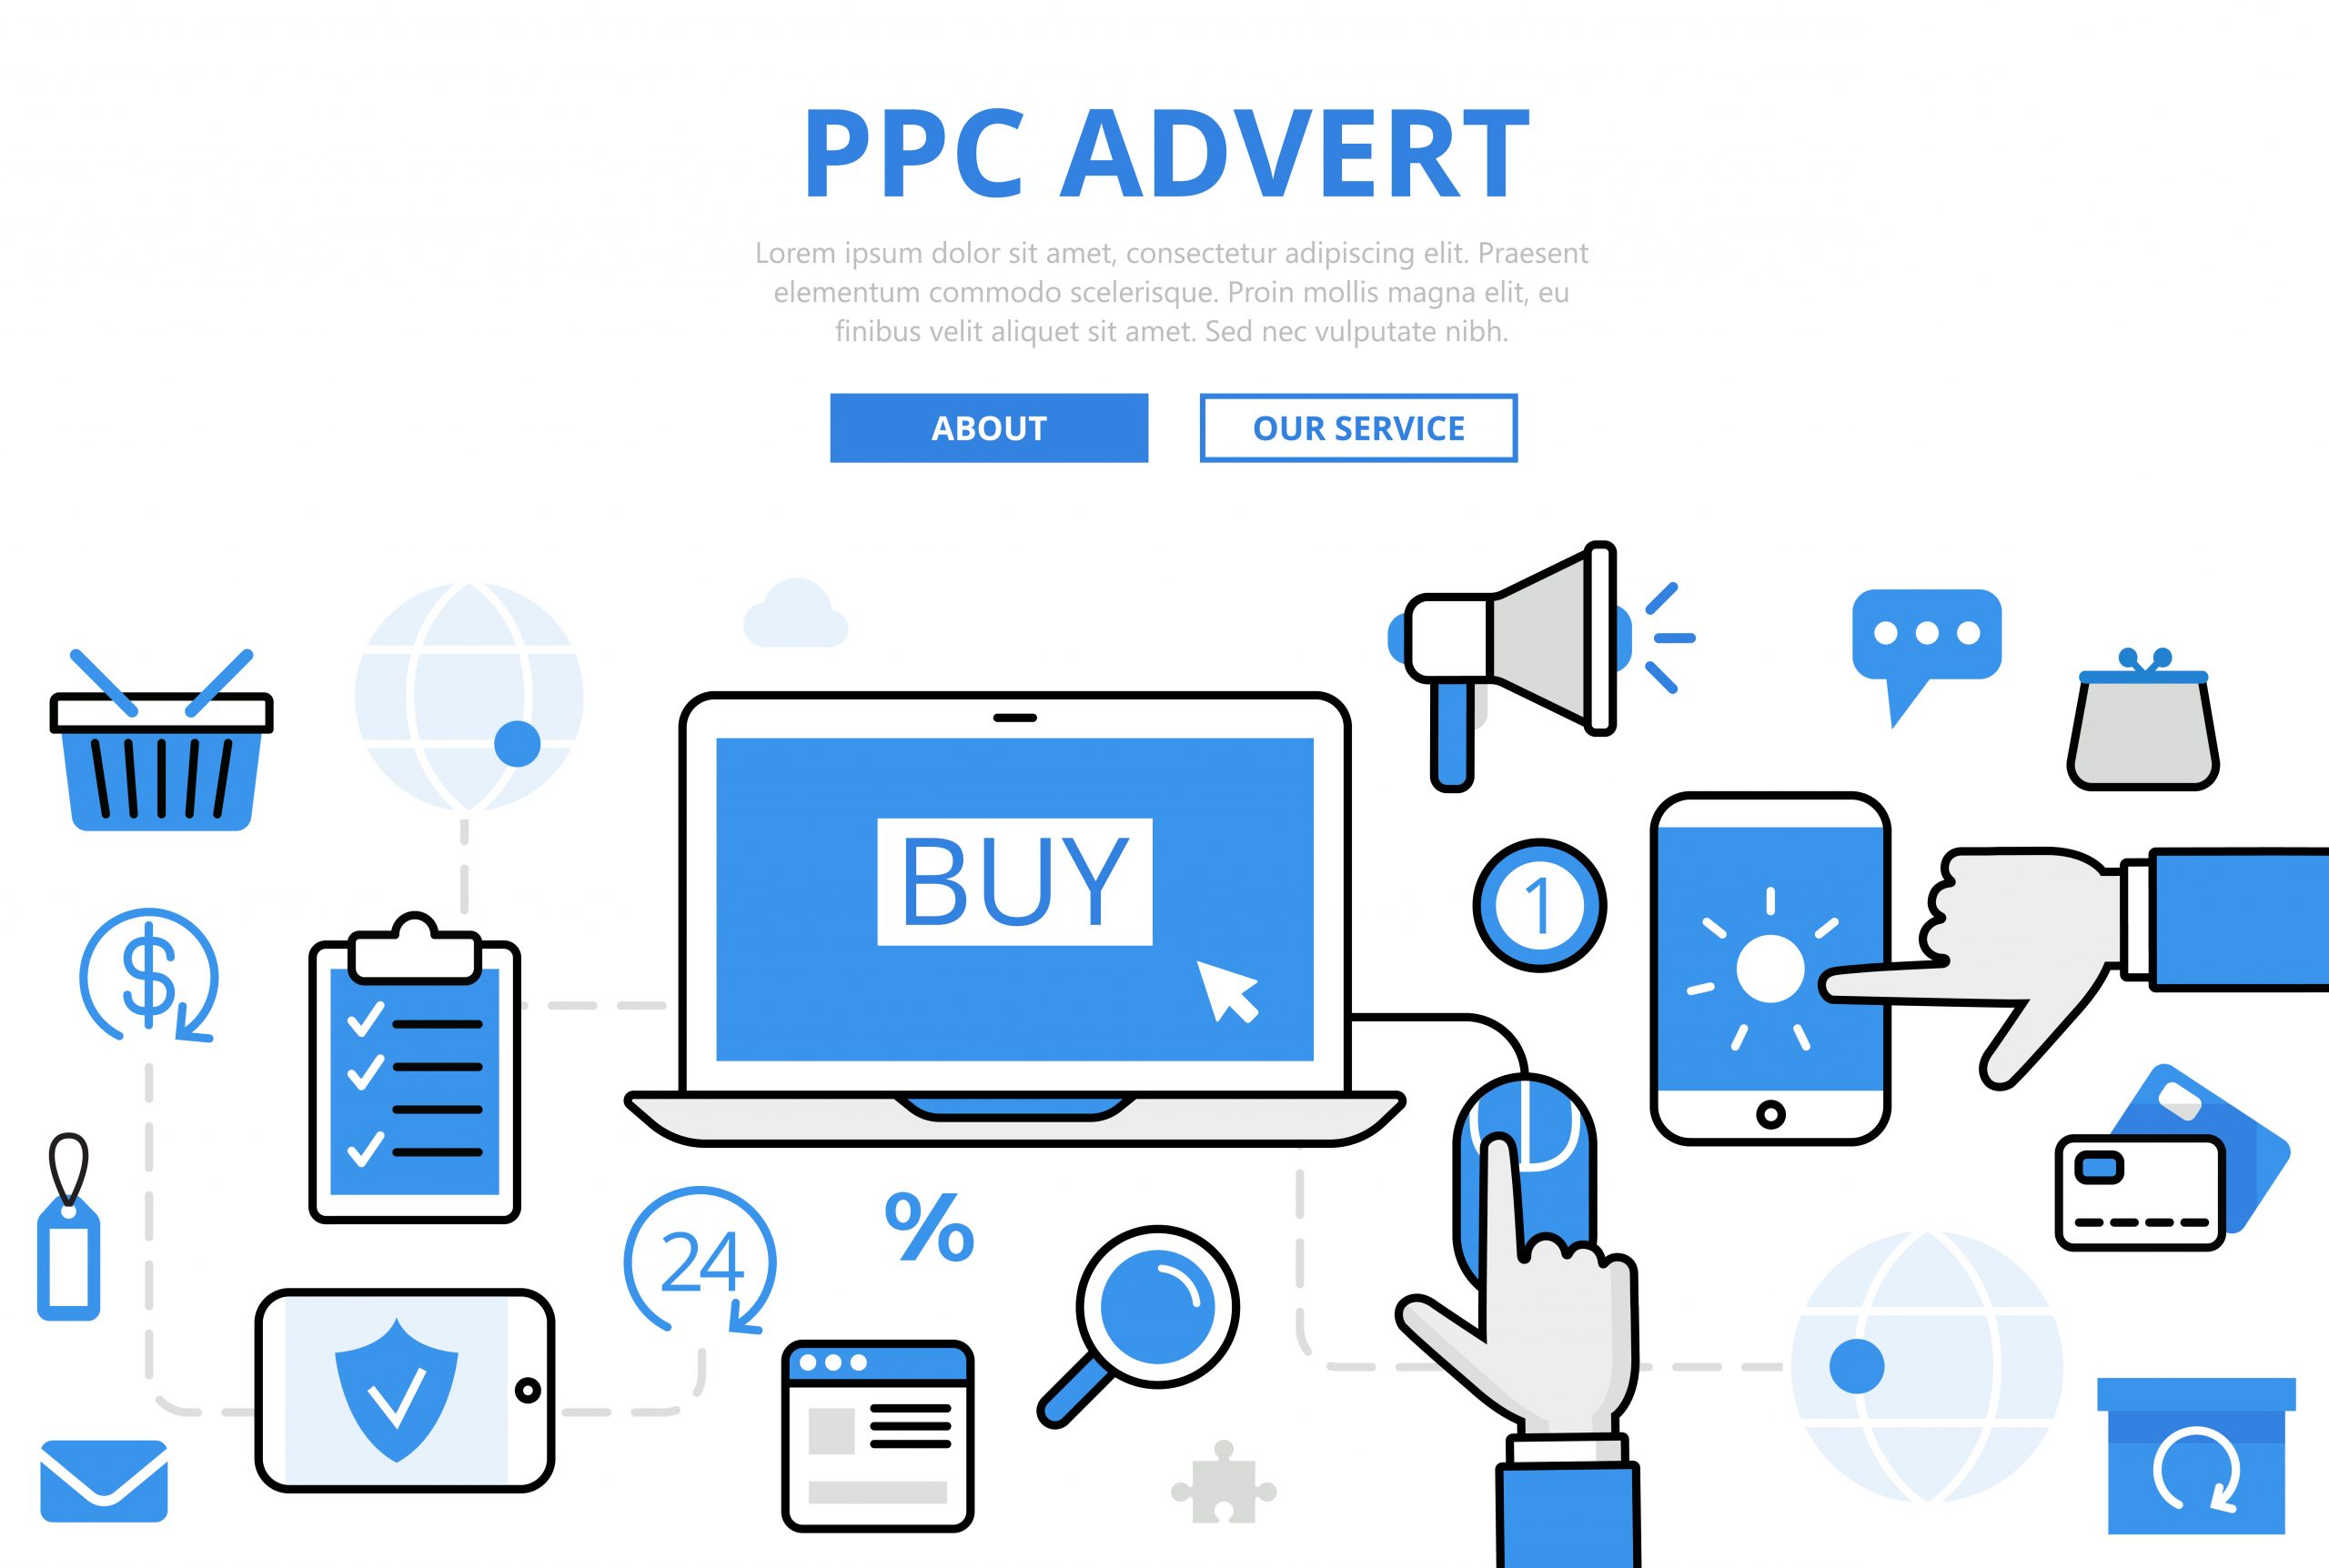 7 POWERFUL BENEFITS OF PPC(PAY-PER-CLICK) ADVERTISING FOR BUSINESS